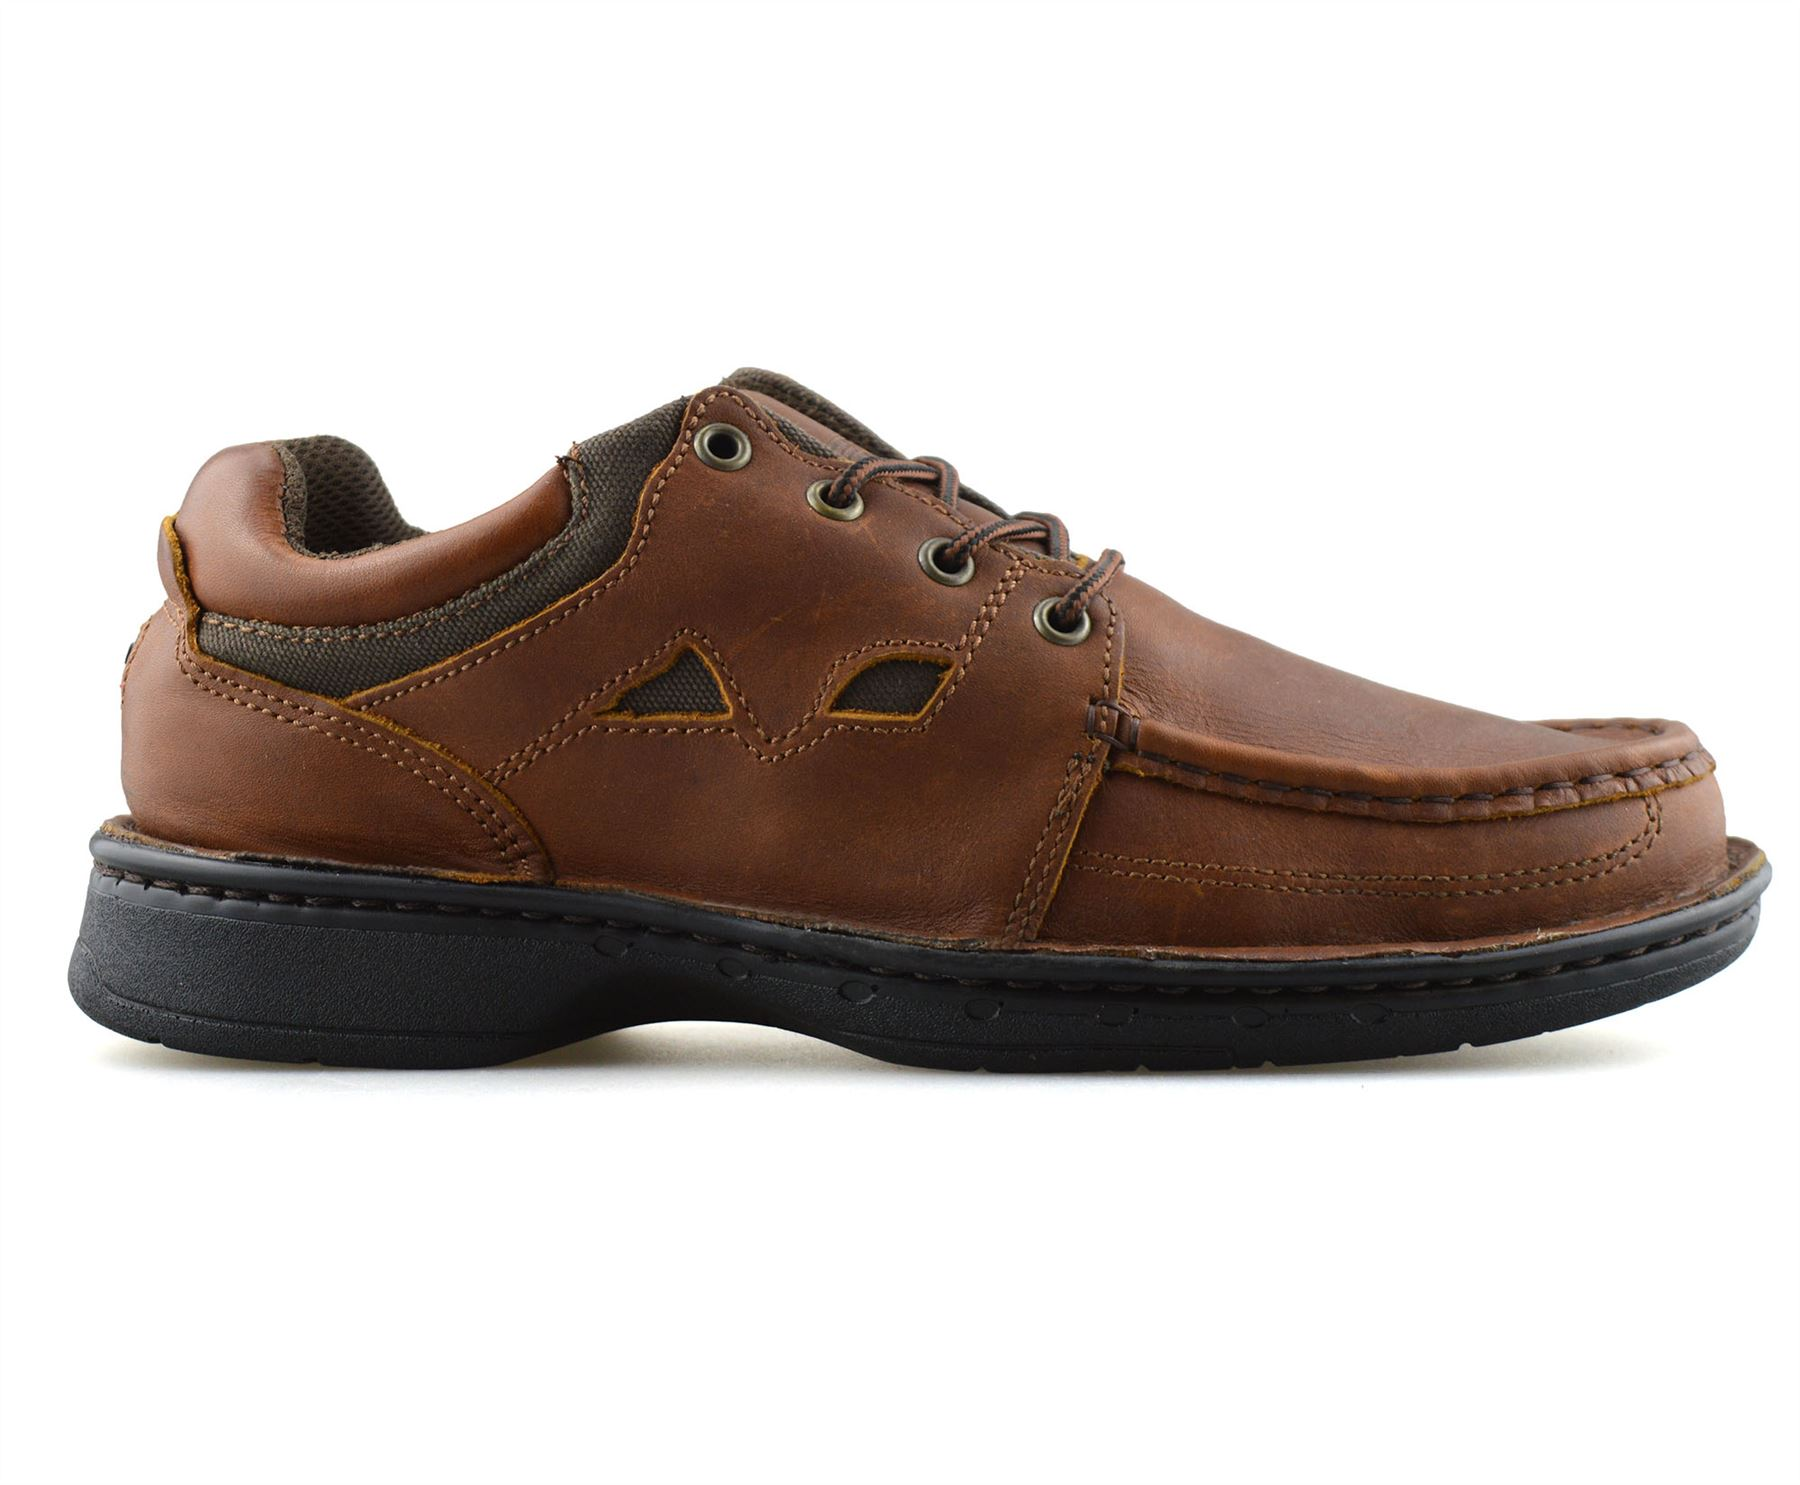 Mens-Leather-Casual-Smart-Lace-Up-Walking-Work-Moccasin-Driving-Boat-Shoes-Size thumbnail 9